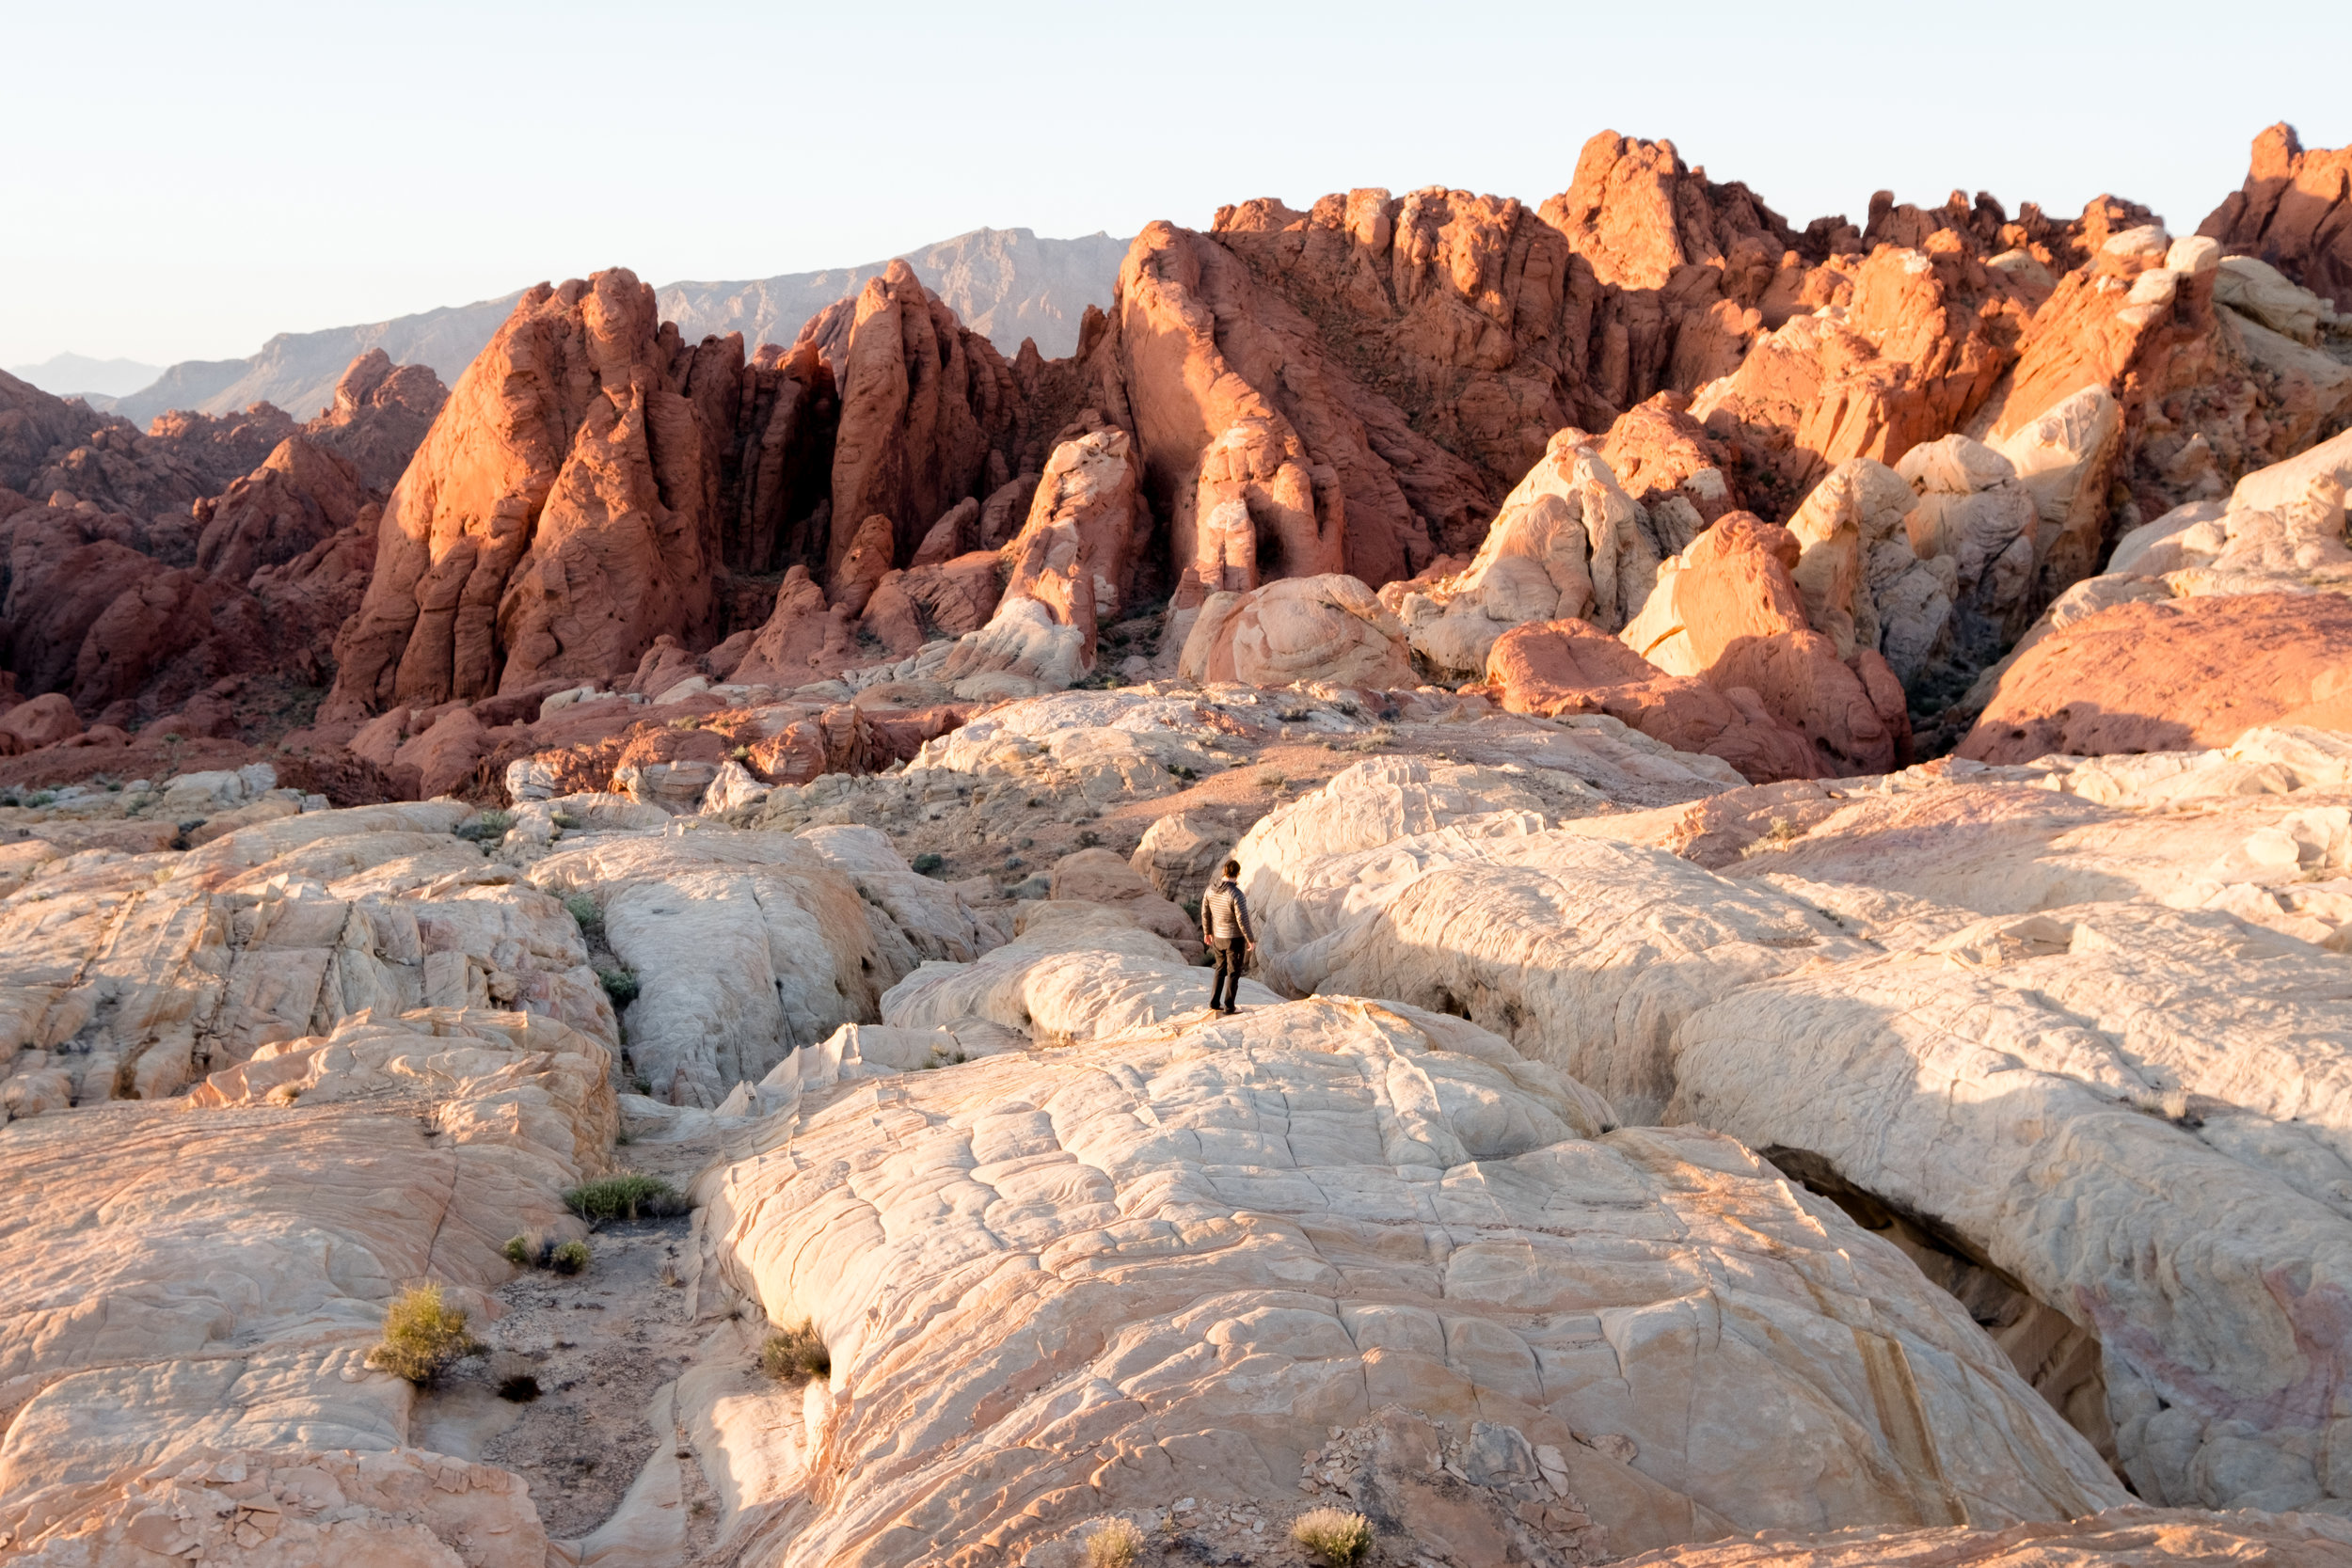 Sunrise casting an orange glow on these unique formations in the Valley of Fire.